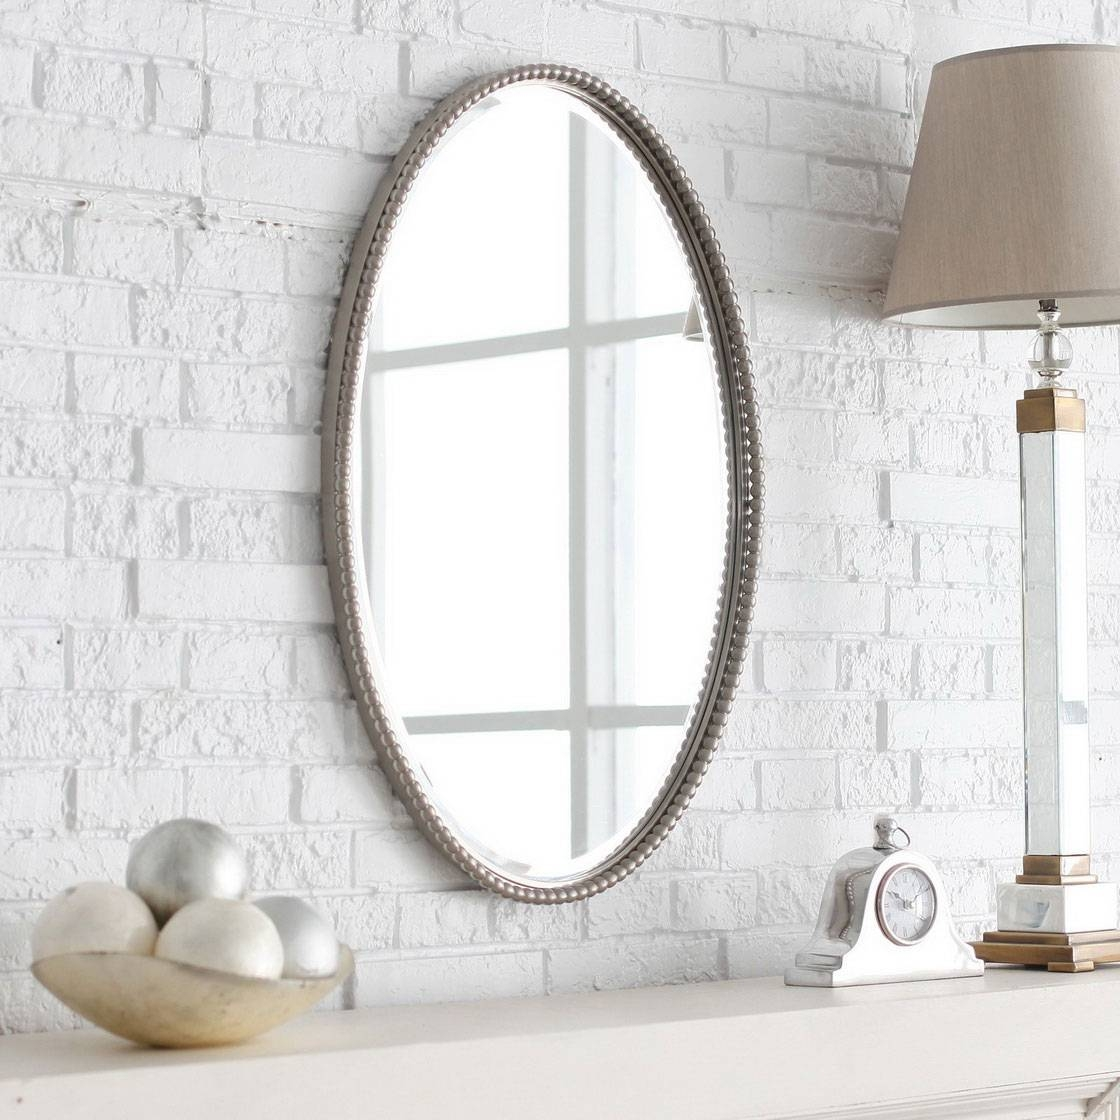 Large Oval Mirrors For Bathroom Walls | Home Pertaining To Oval Mirrors For Walls (View 19 of 25)